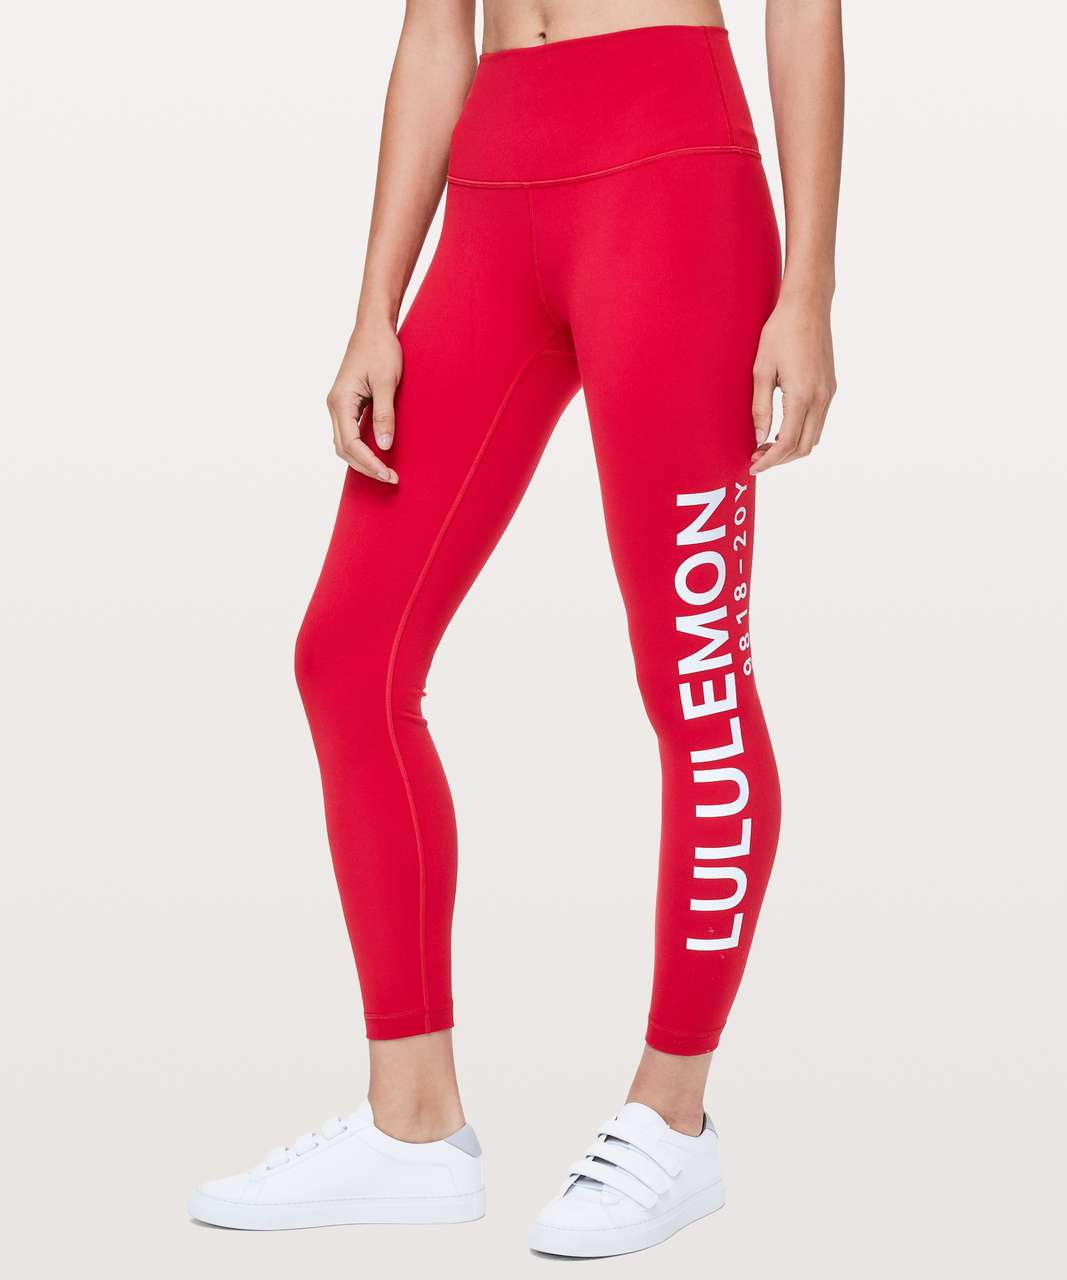 "Lululemon Wunder Under Hi-Rise 7/8 Tight *20Y Collection 25"" - Dark Red"